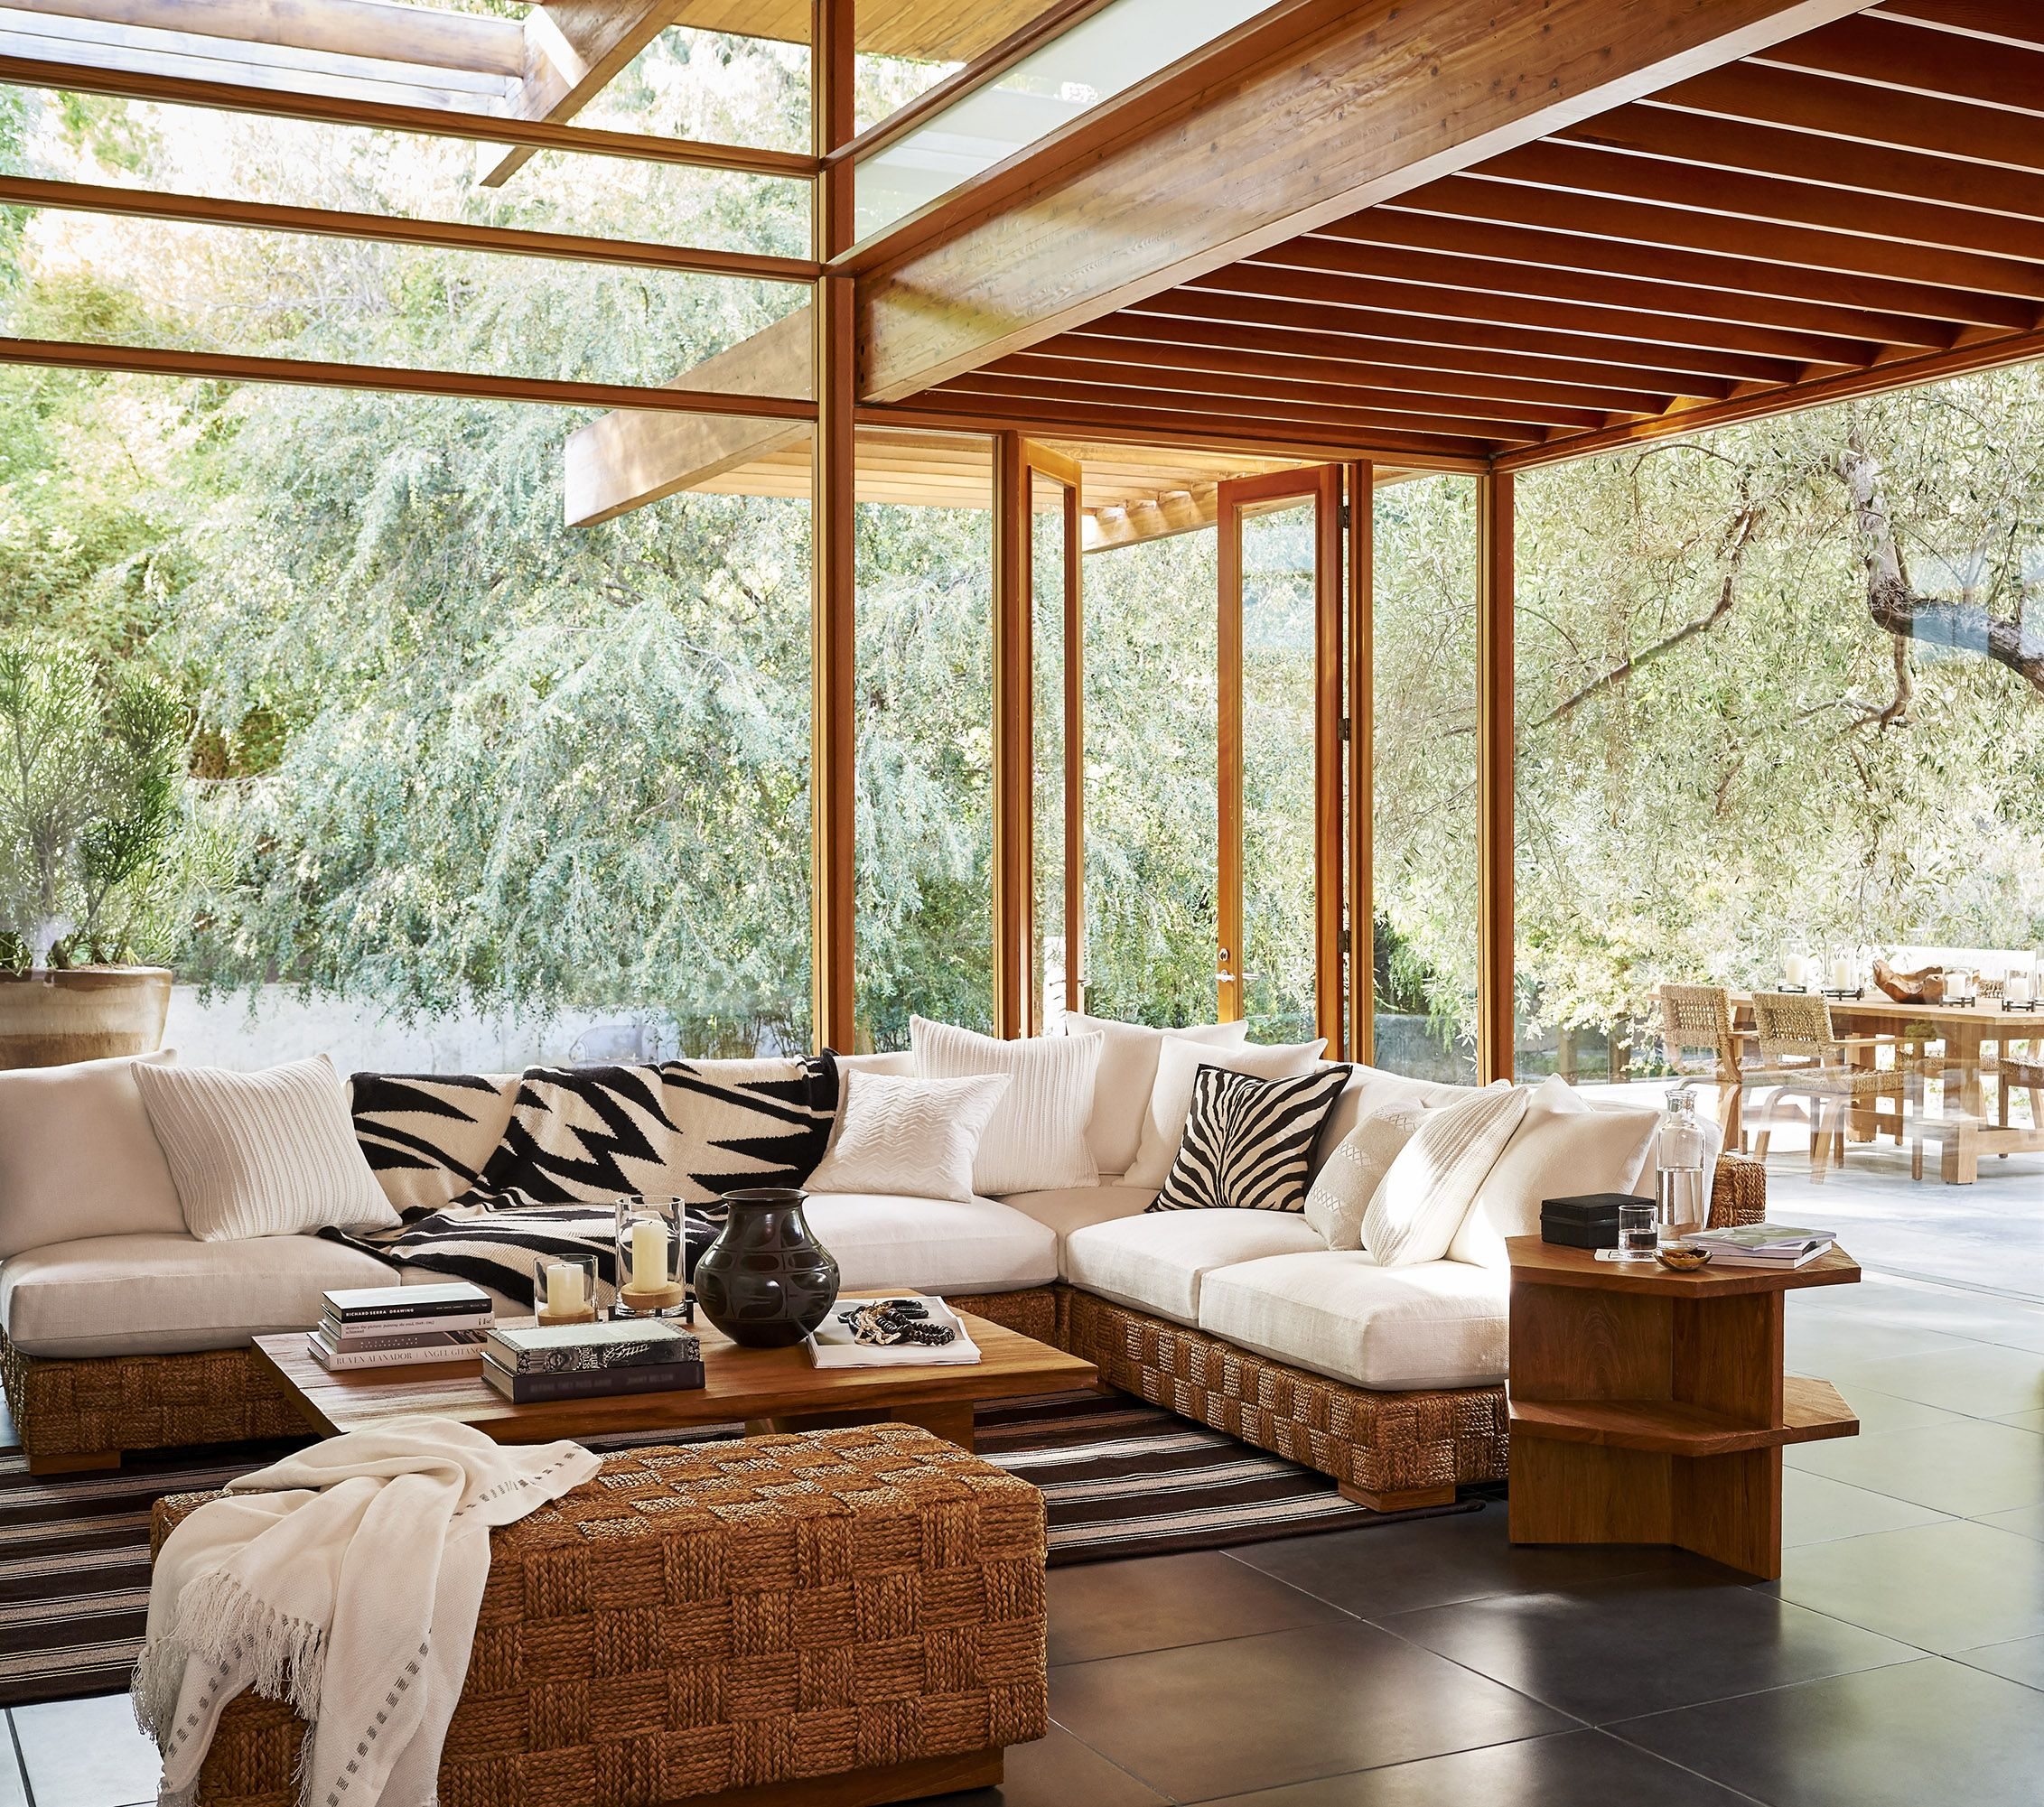 Warm Modern Living Room Ideas: Warm Teak Furniture, Natural Materials And Patterned